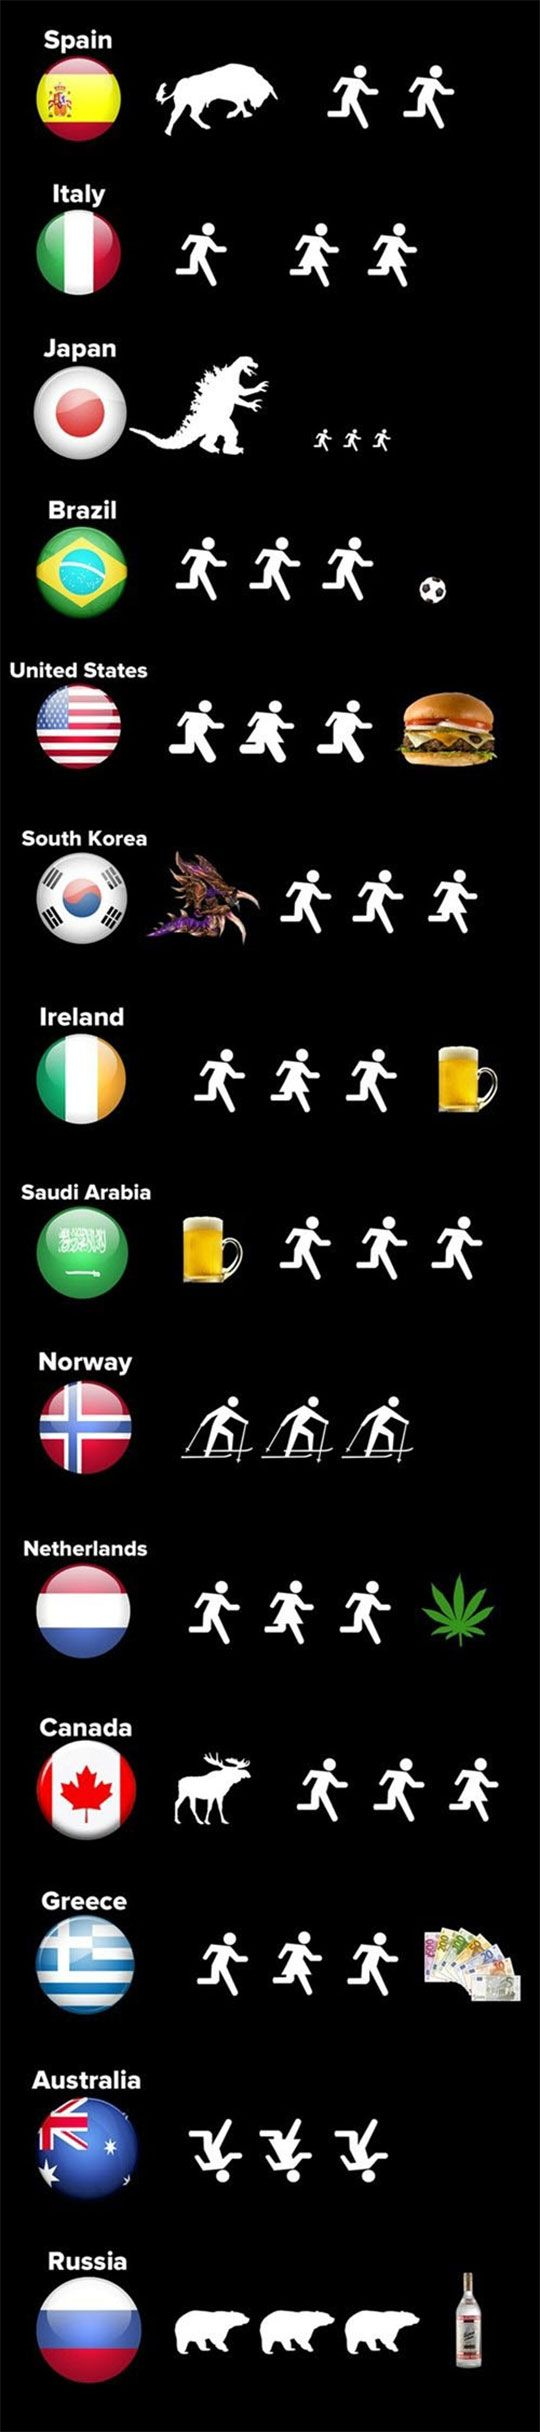 Why People Run In Different Countries